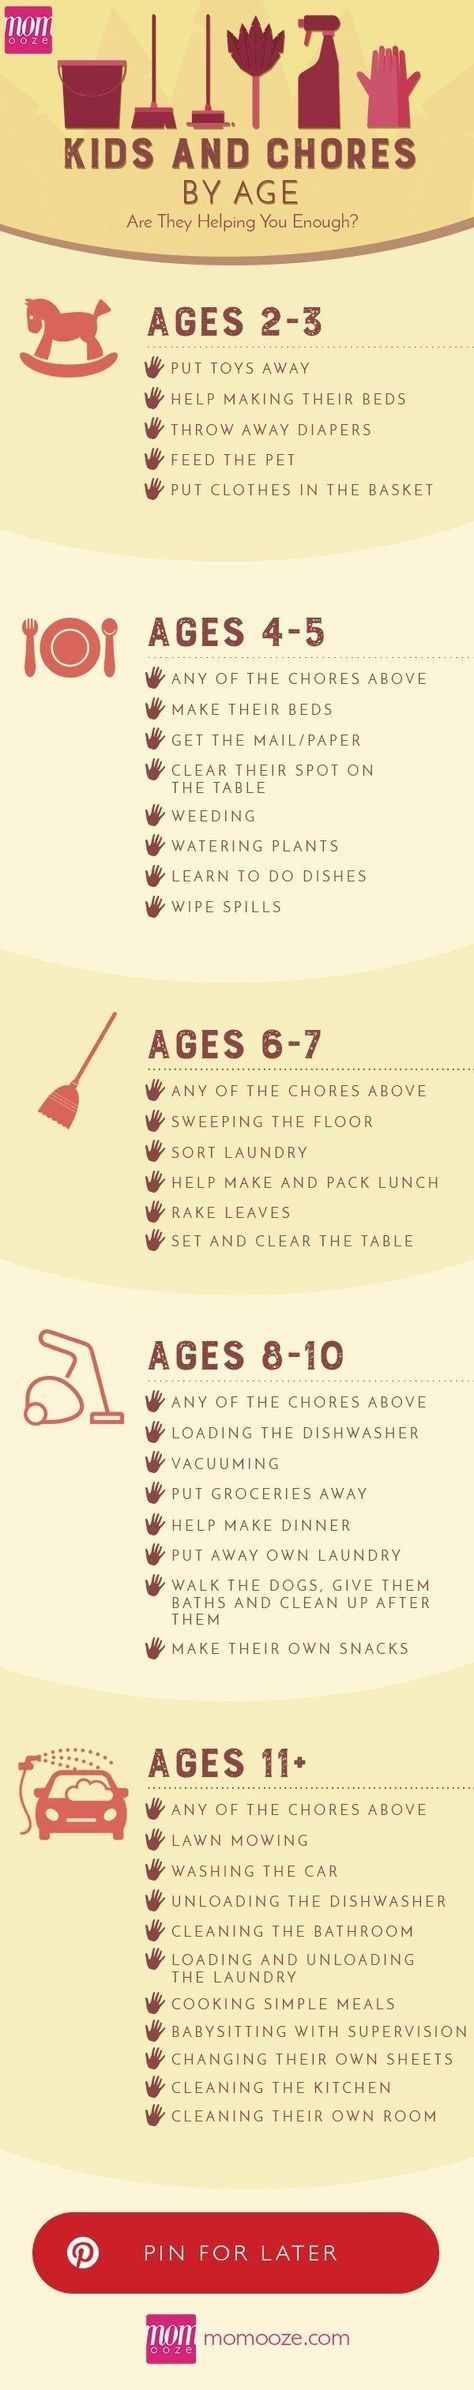 Kids Chores by Age: Are they helping you enough? #momhacks #chores #kids